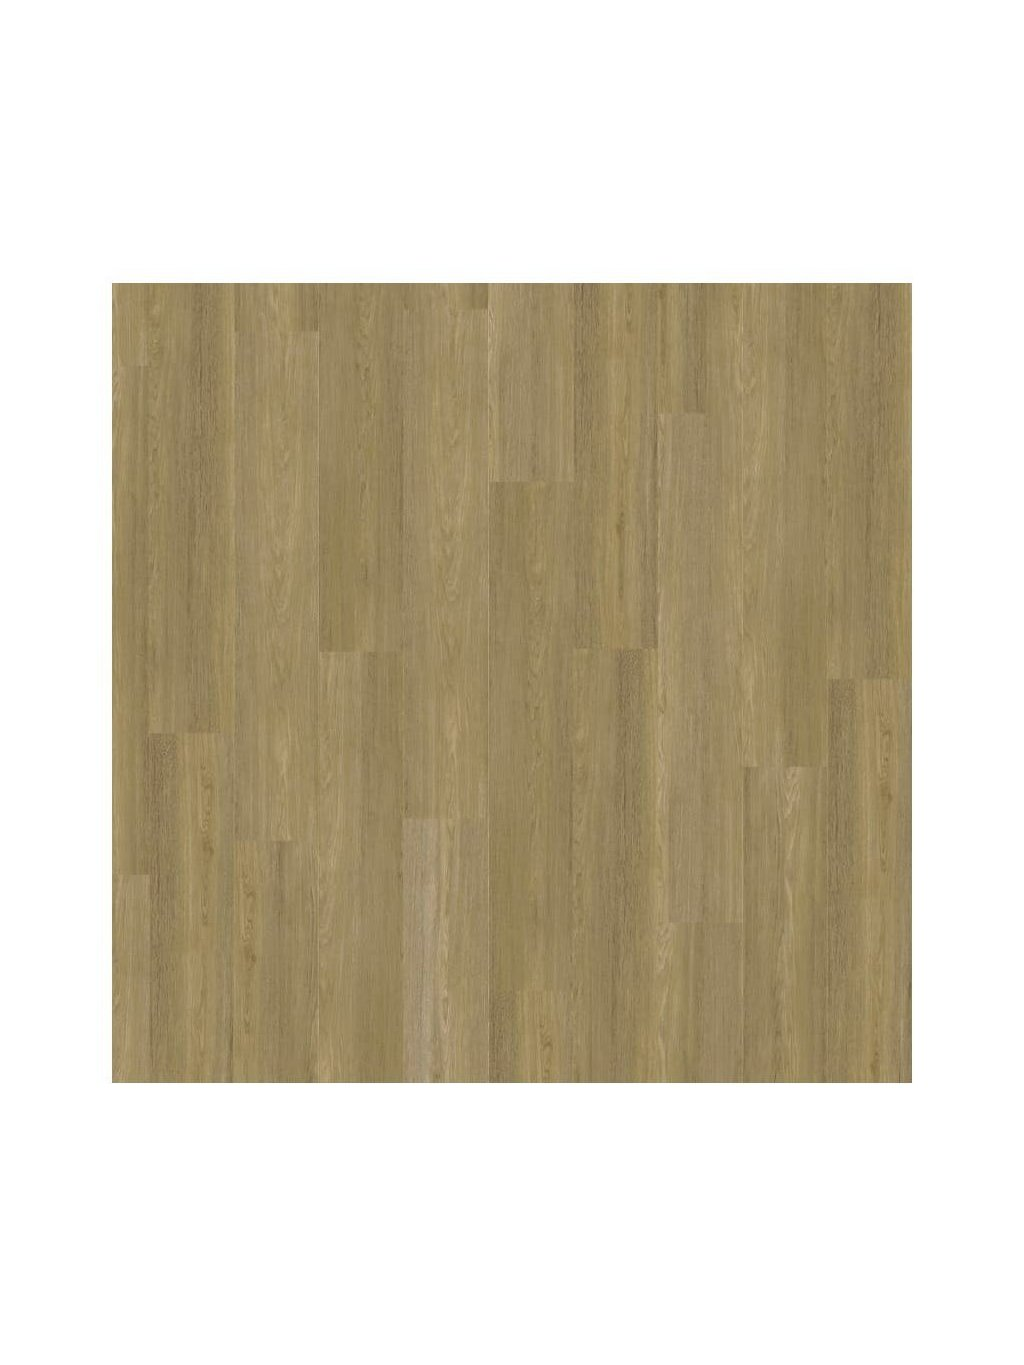 Vinylova podlaha Expona Design 6179 Natural brushed oak